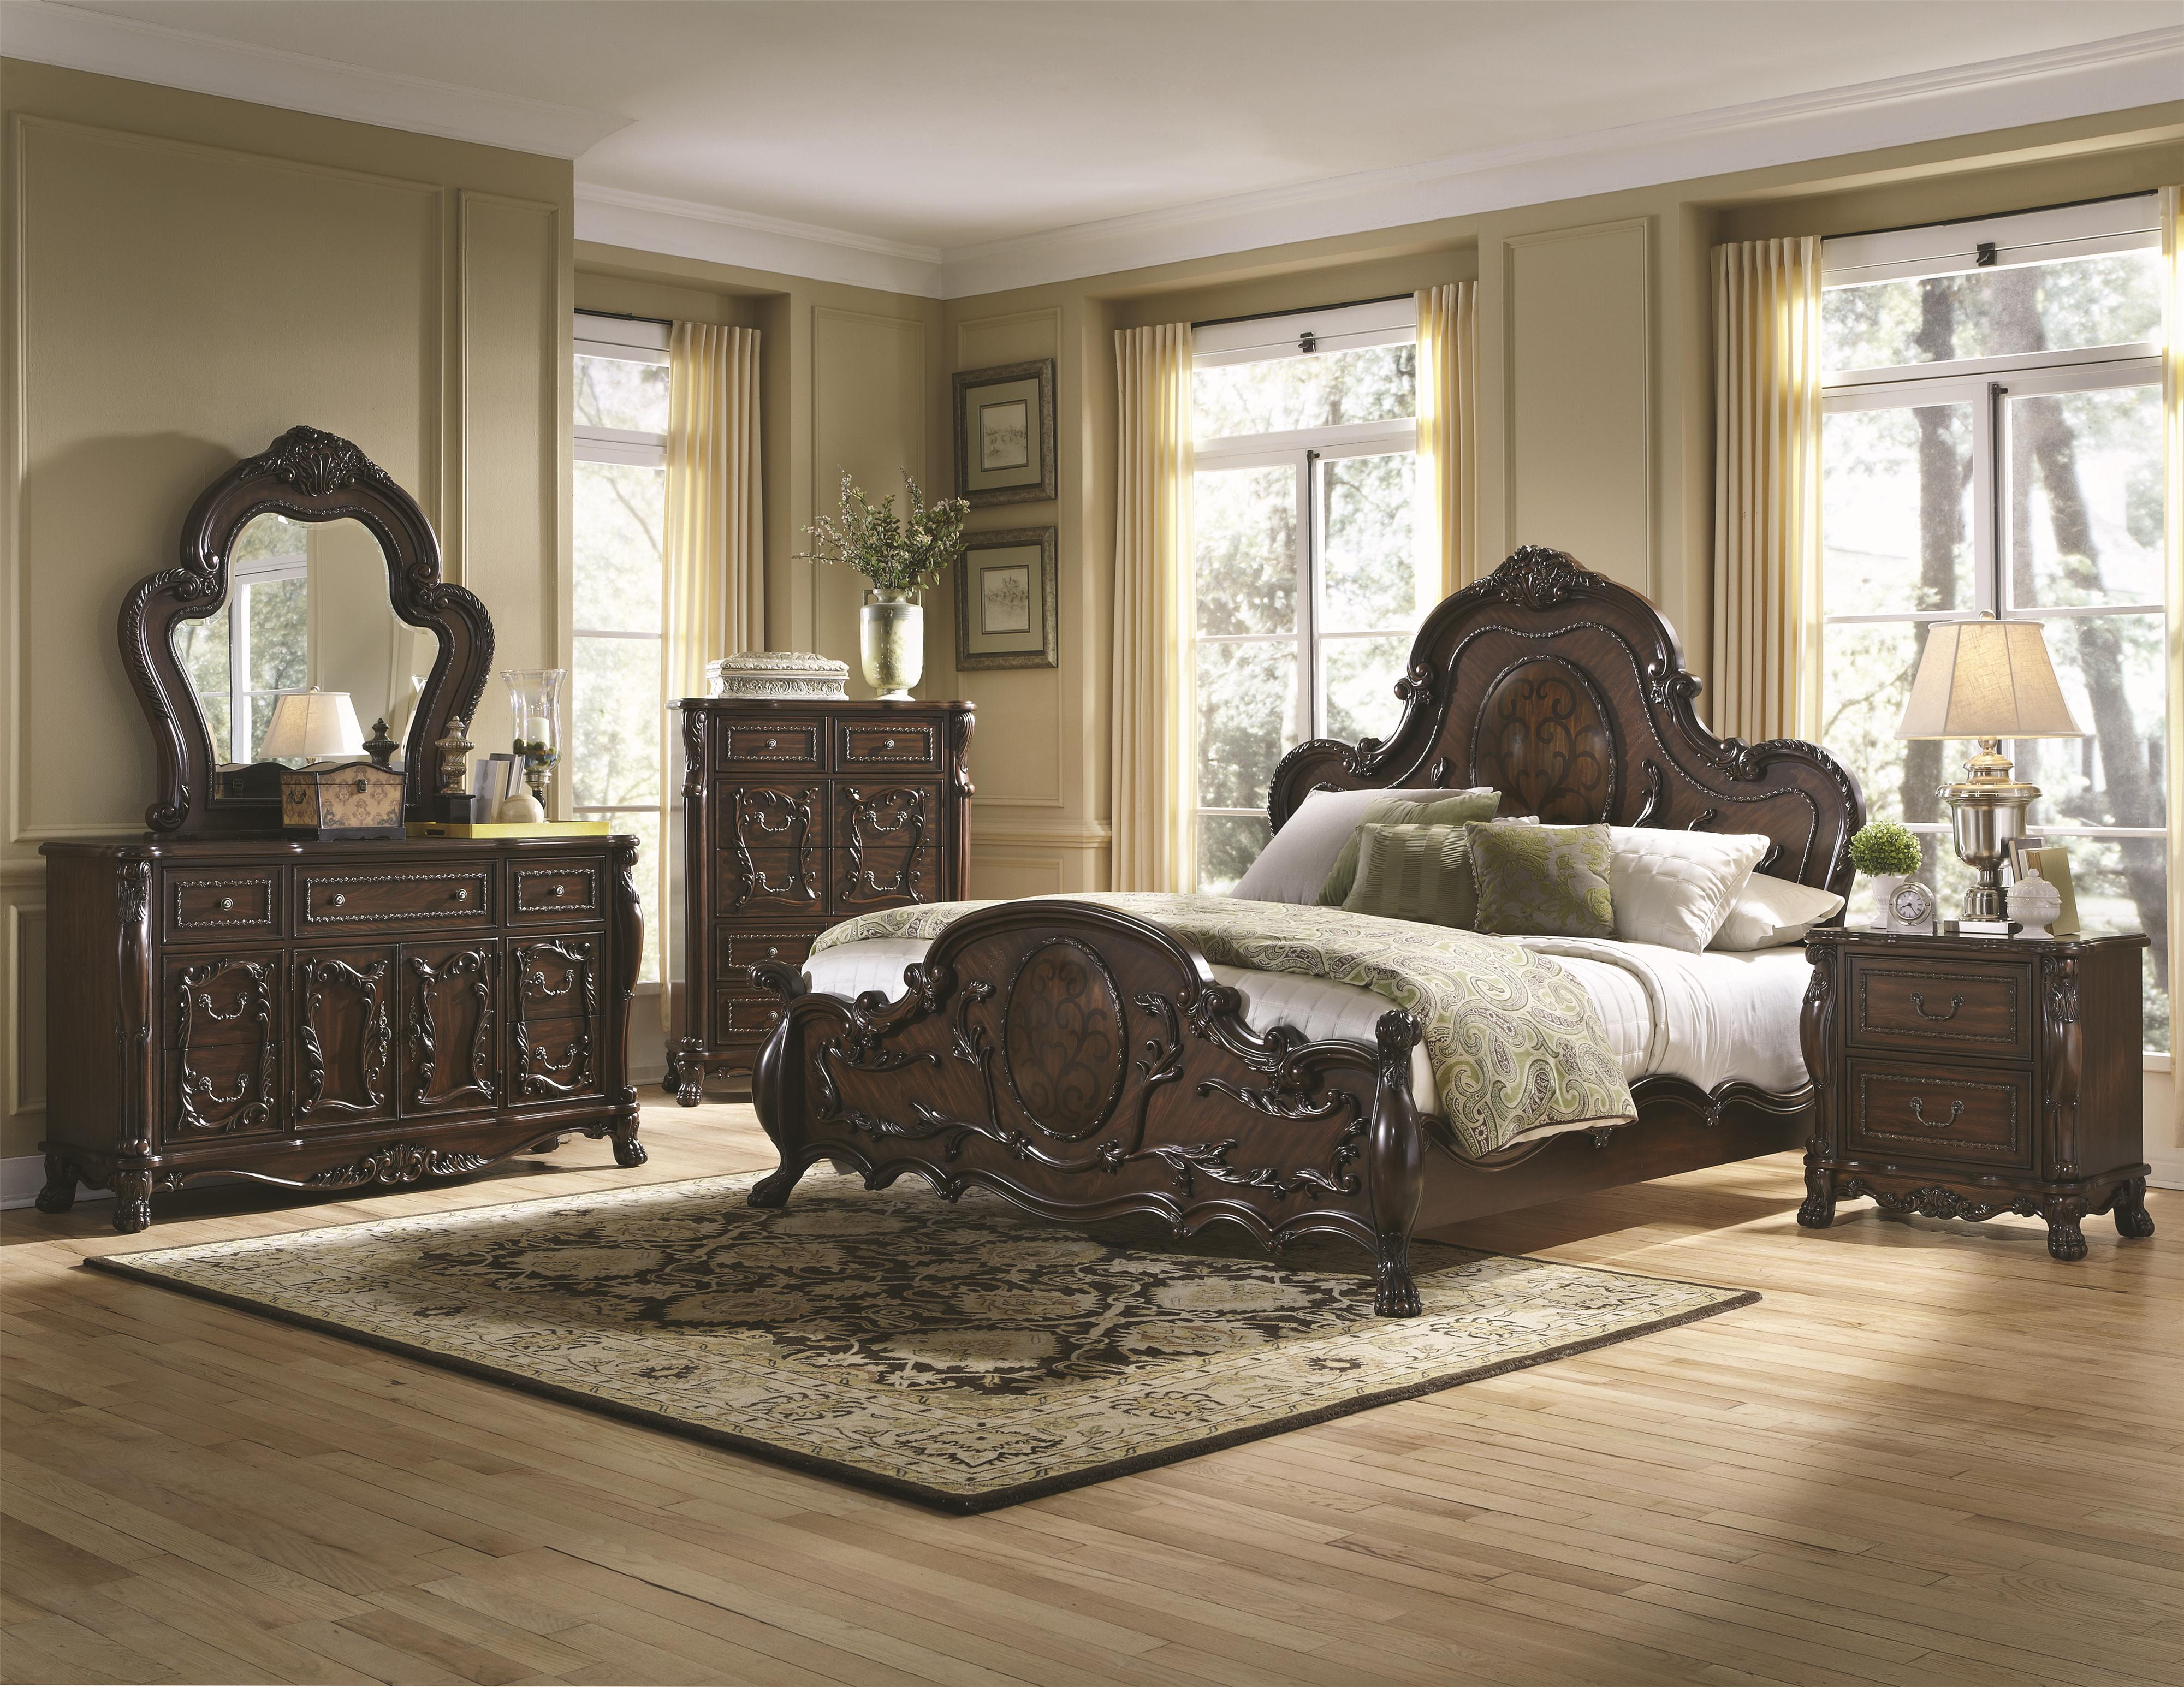 Coaster Abigail California King Bedroom Group 1 - Item Number: 20445 CK Bedroom Group 1